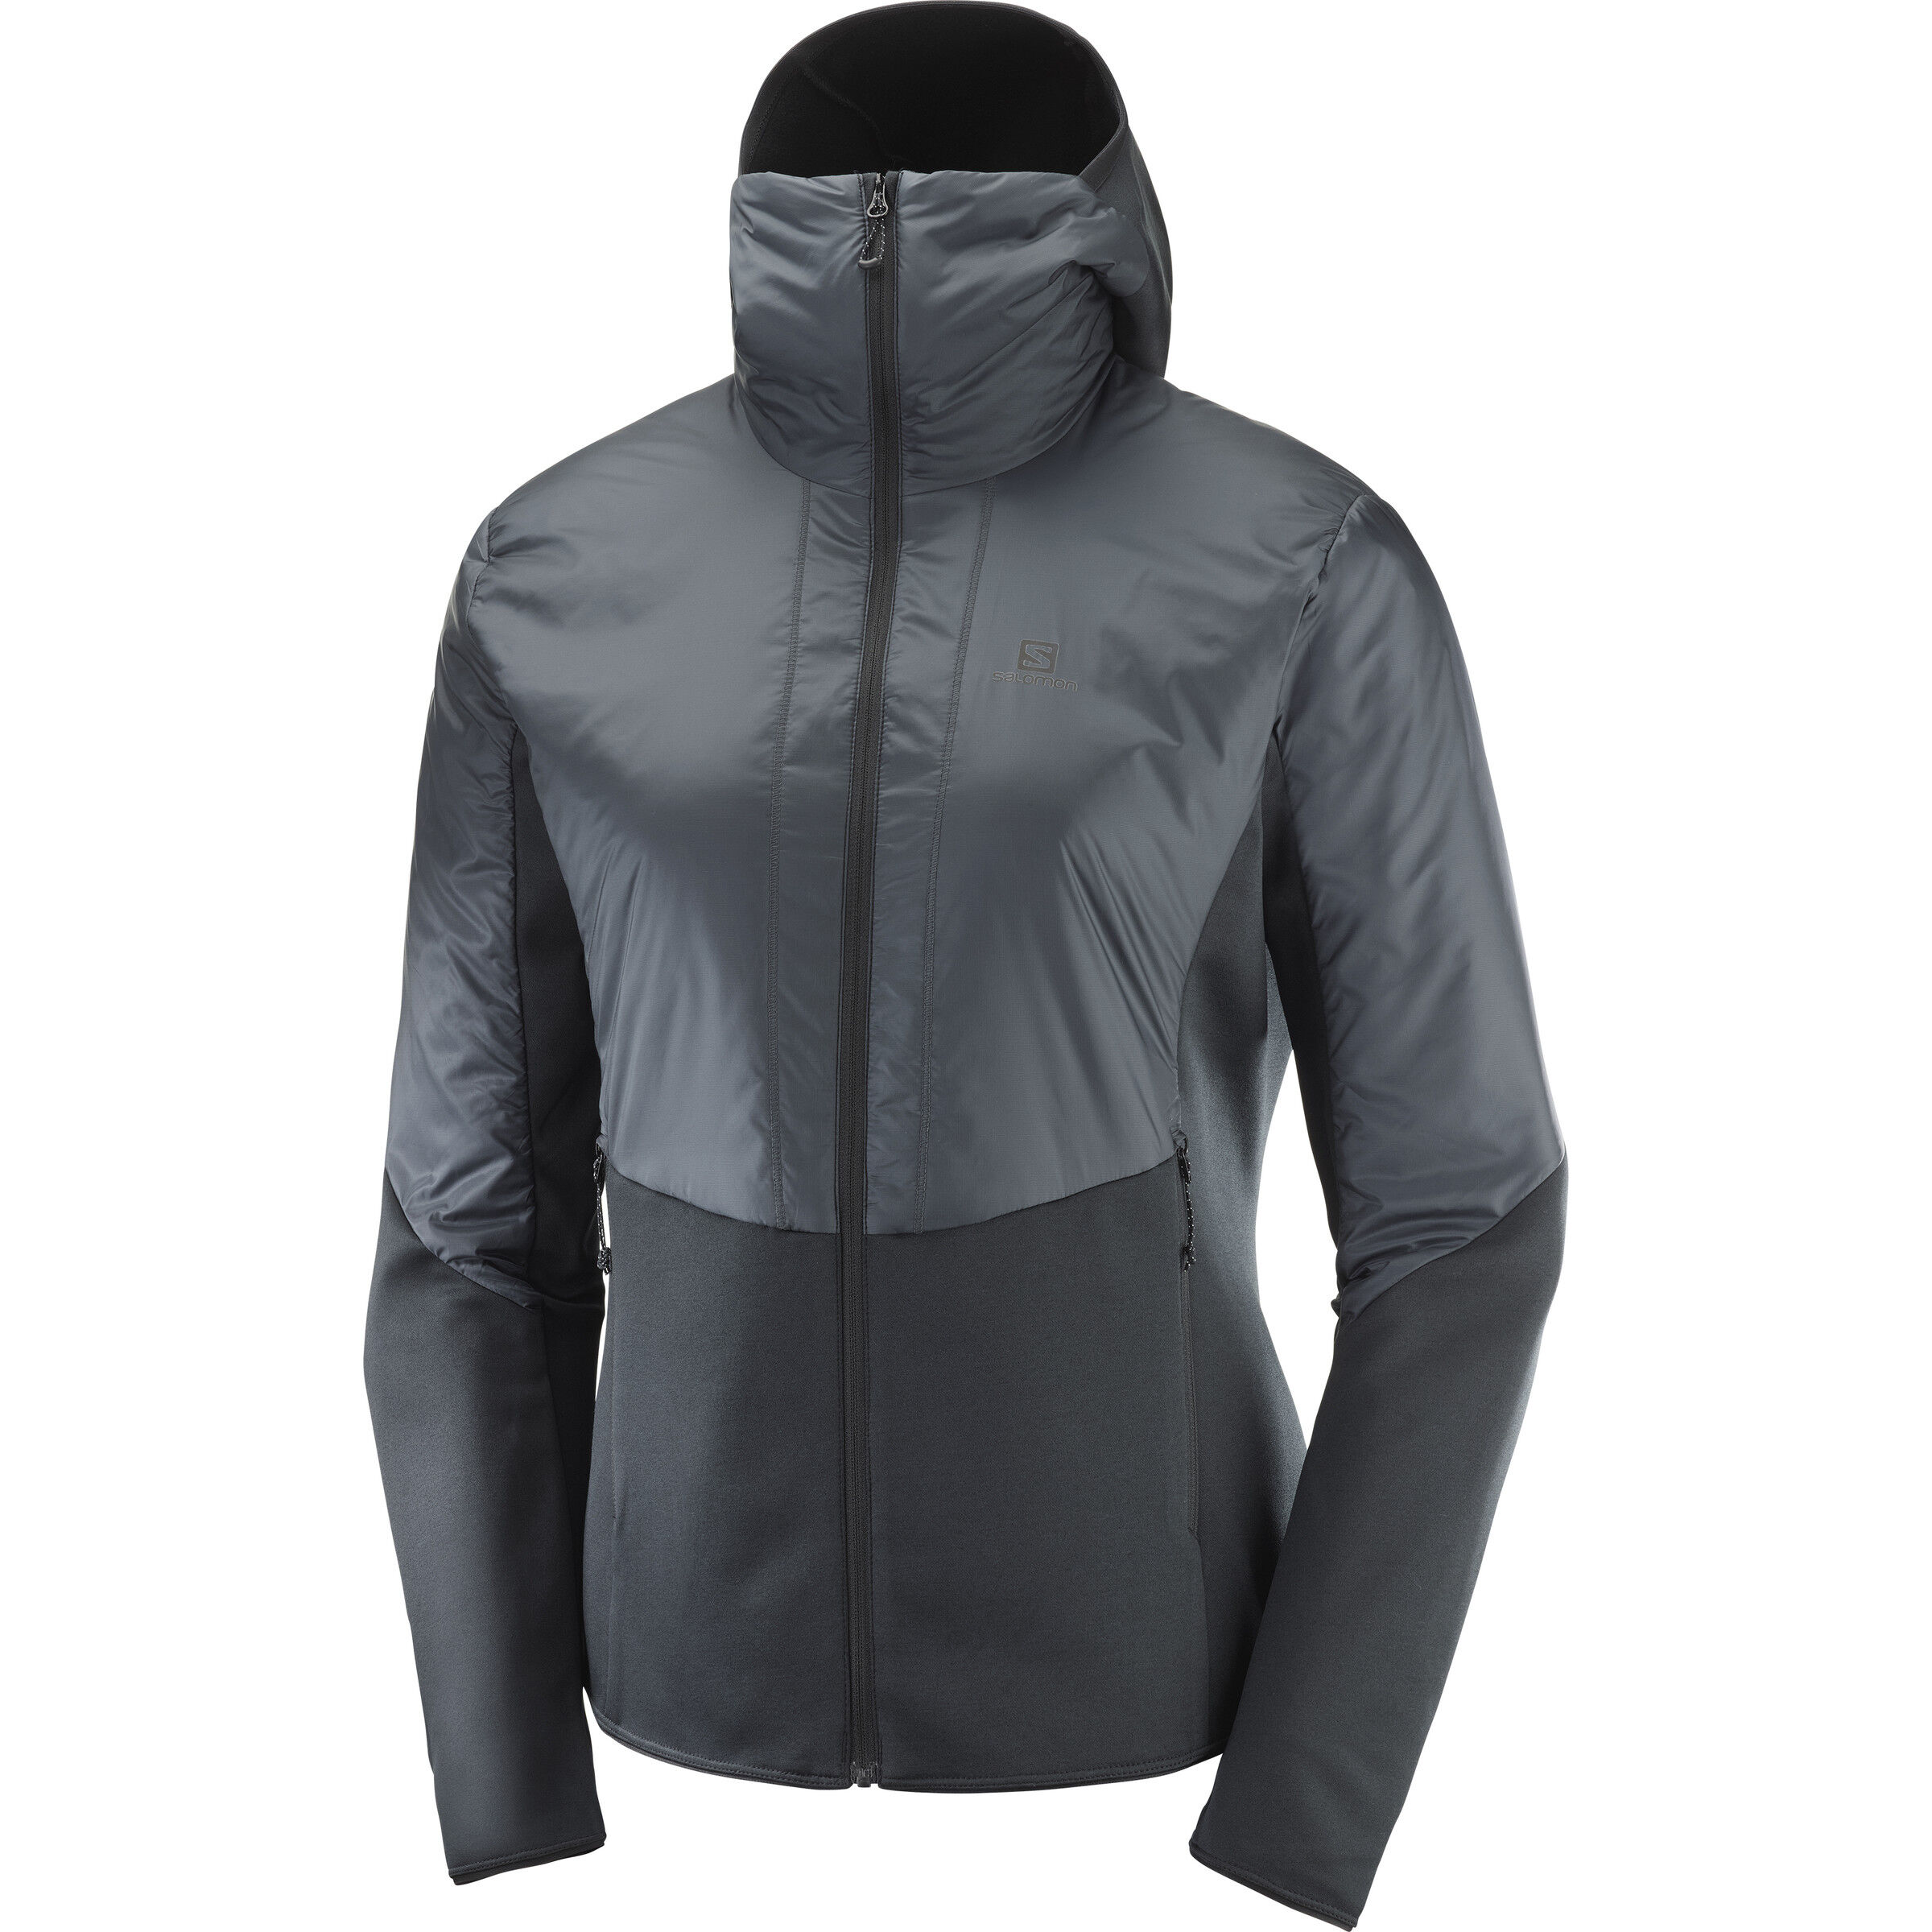 Salomon Stormslide Jacke Herren black heather